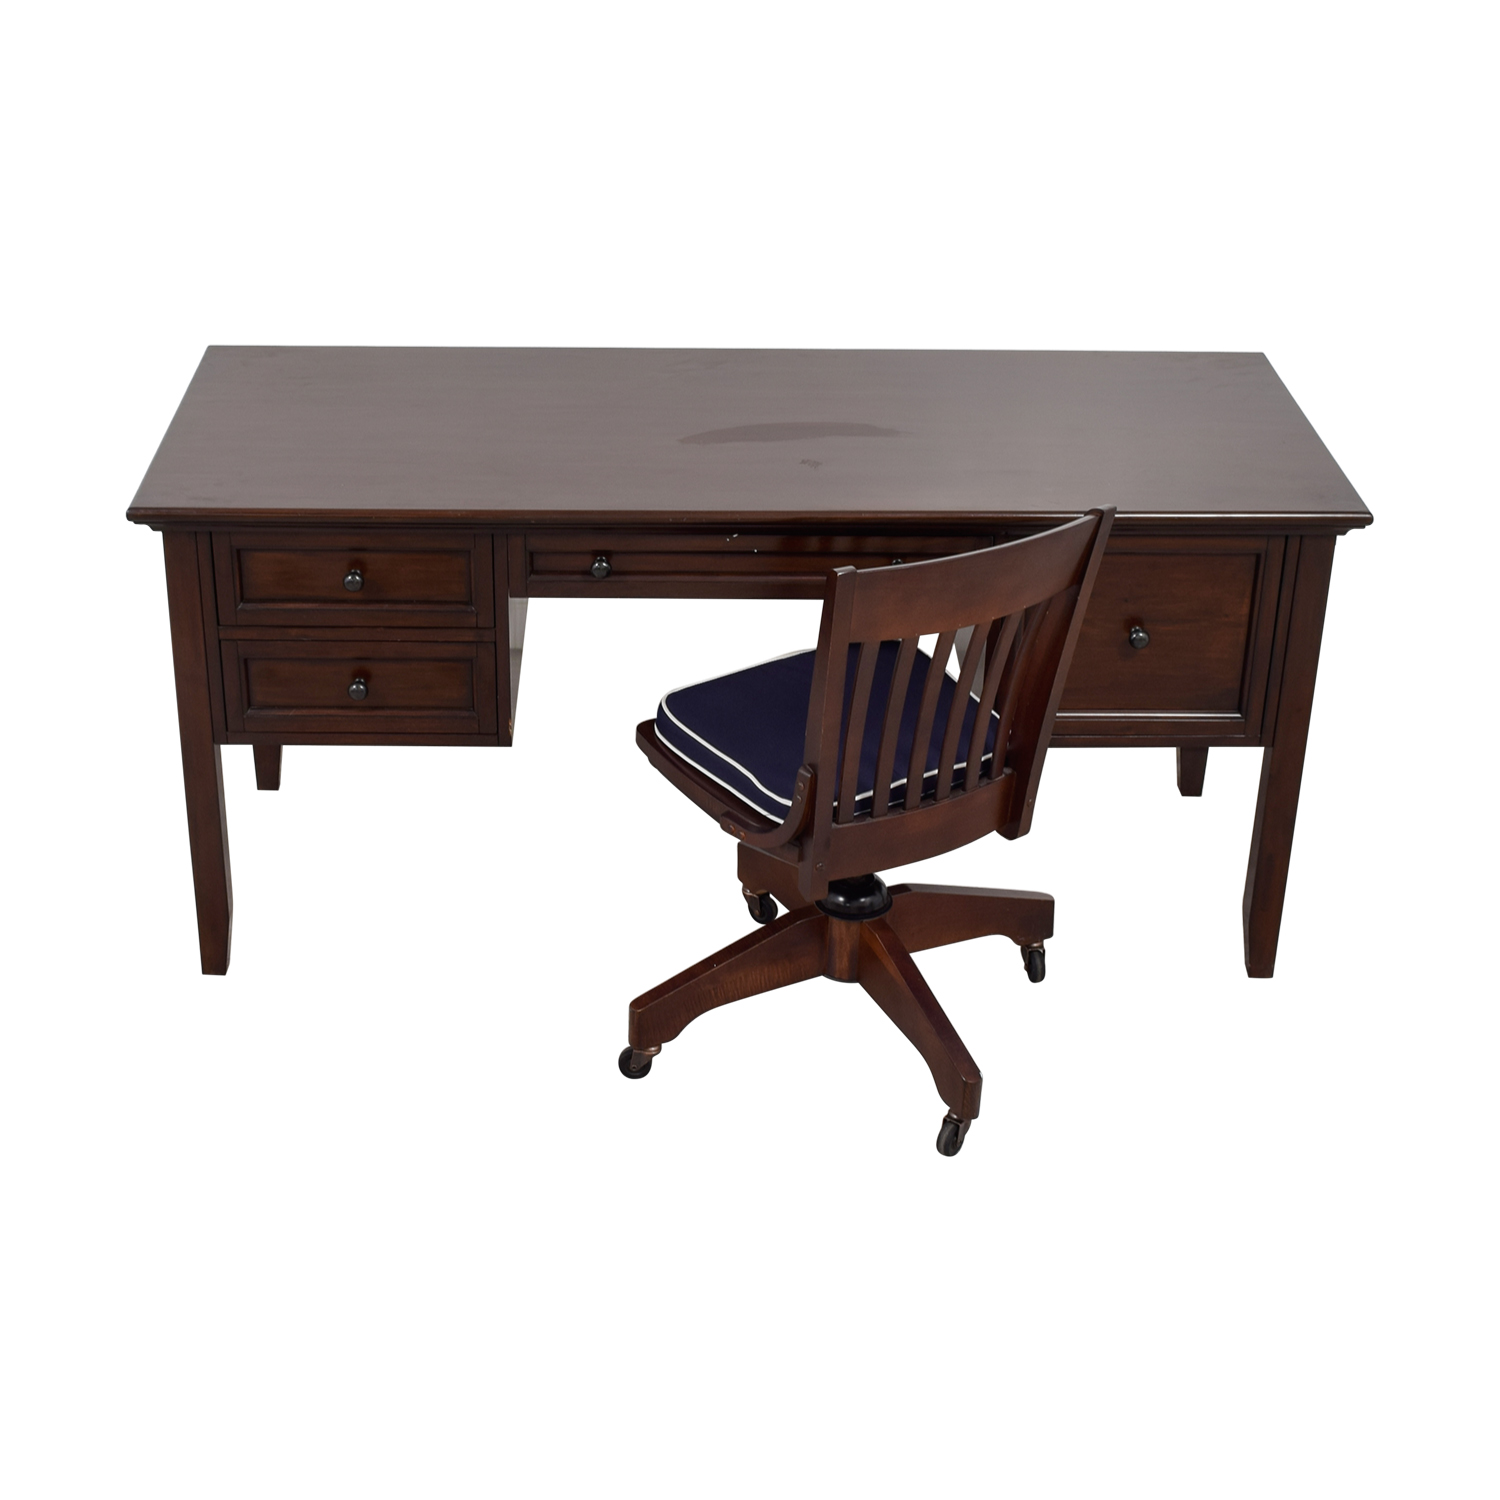 Pottery Barn Pottery Barn Four-Drawer Desk and Chair